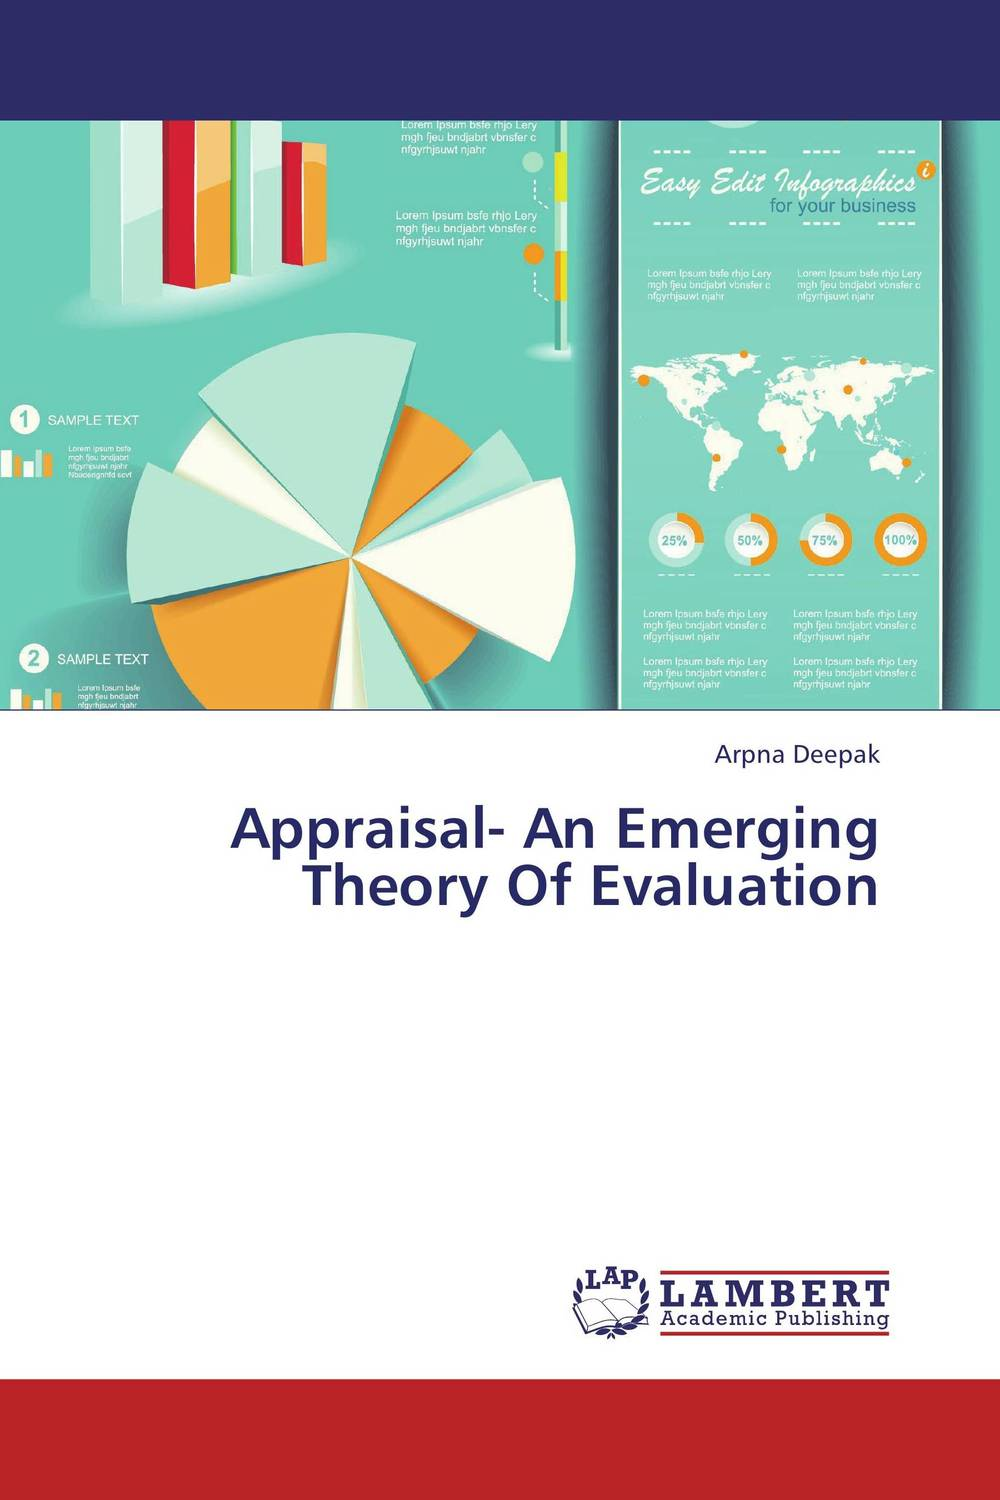 Appraisal- An Emerging Theory Of Evaluation